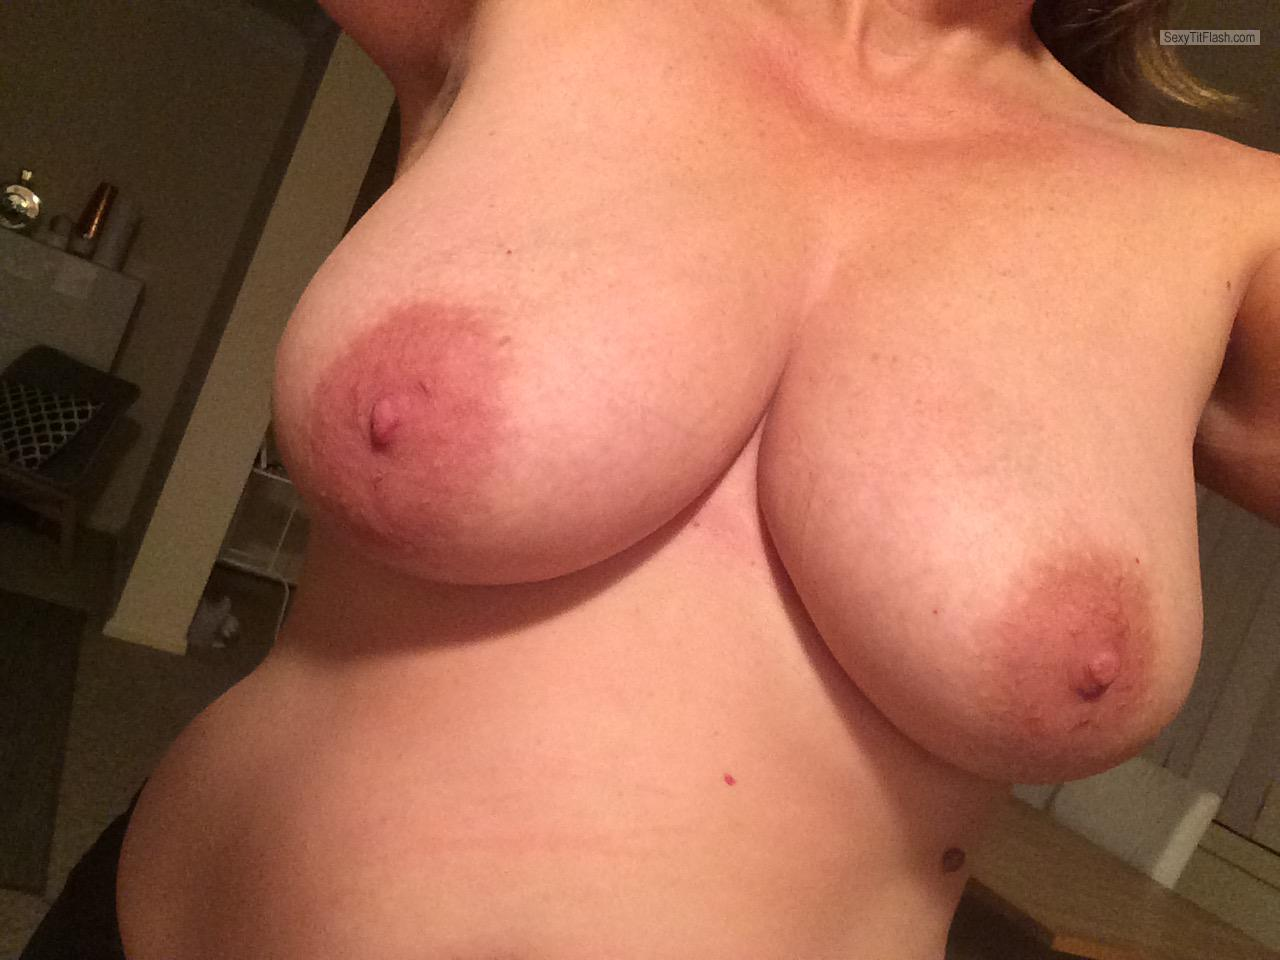 48 year old nascar lady with nice tits